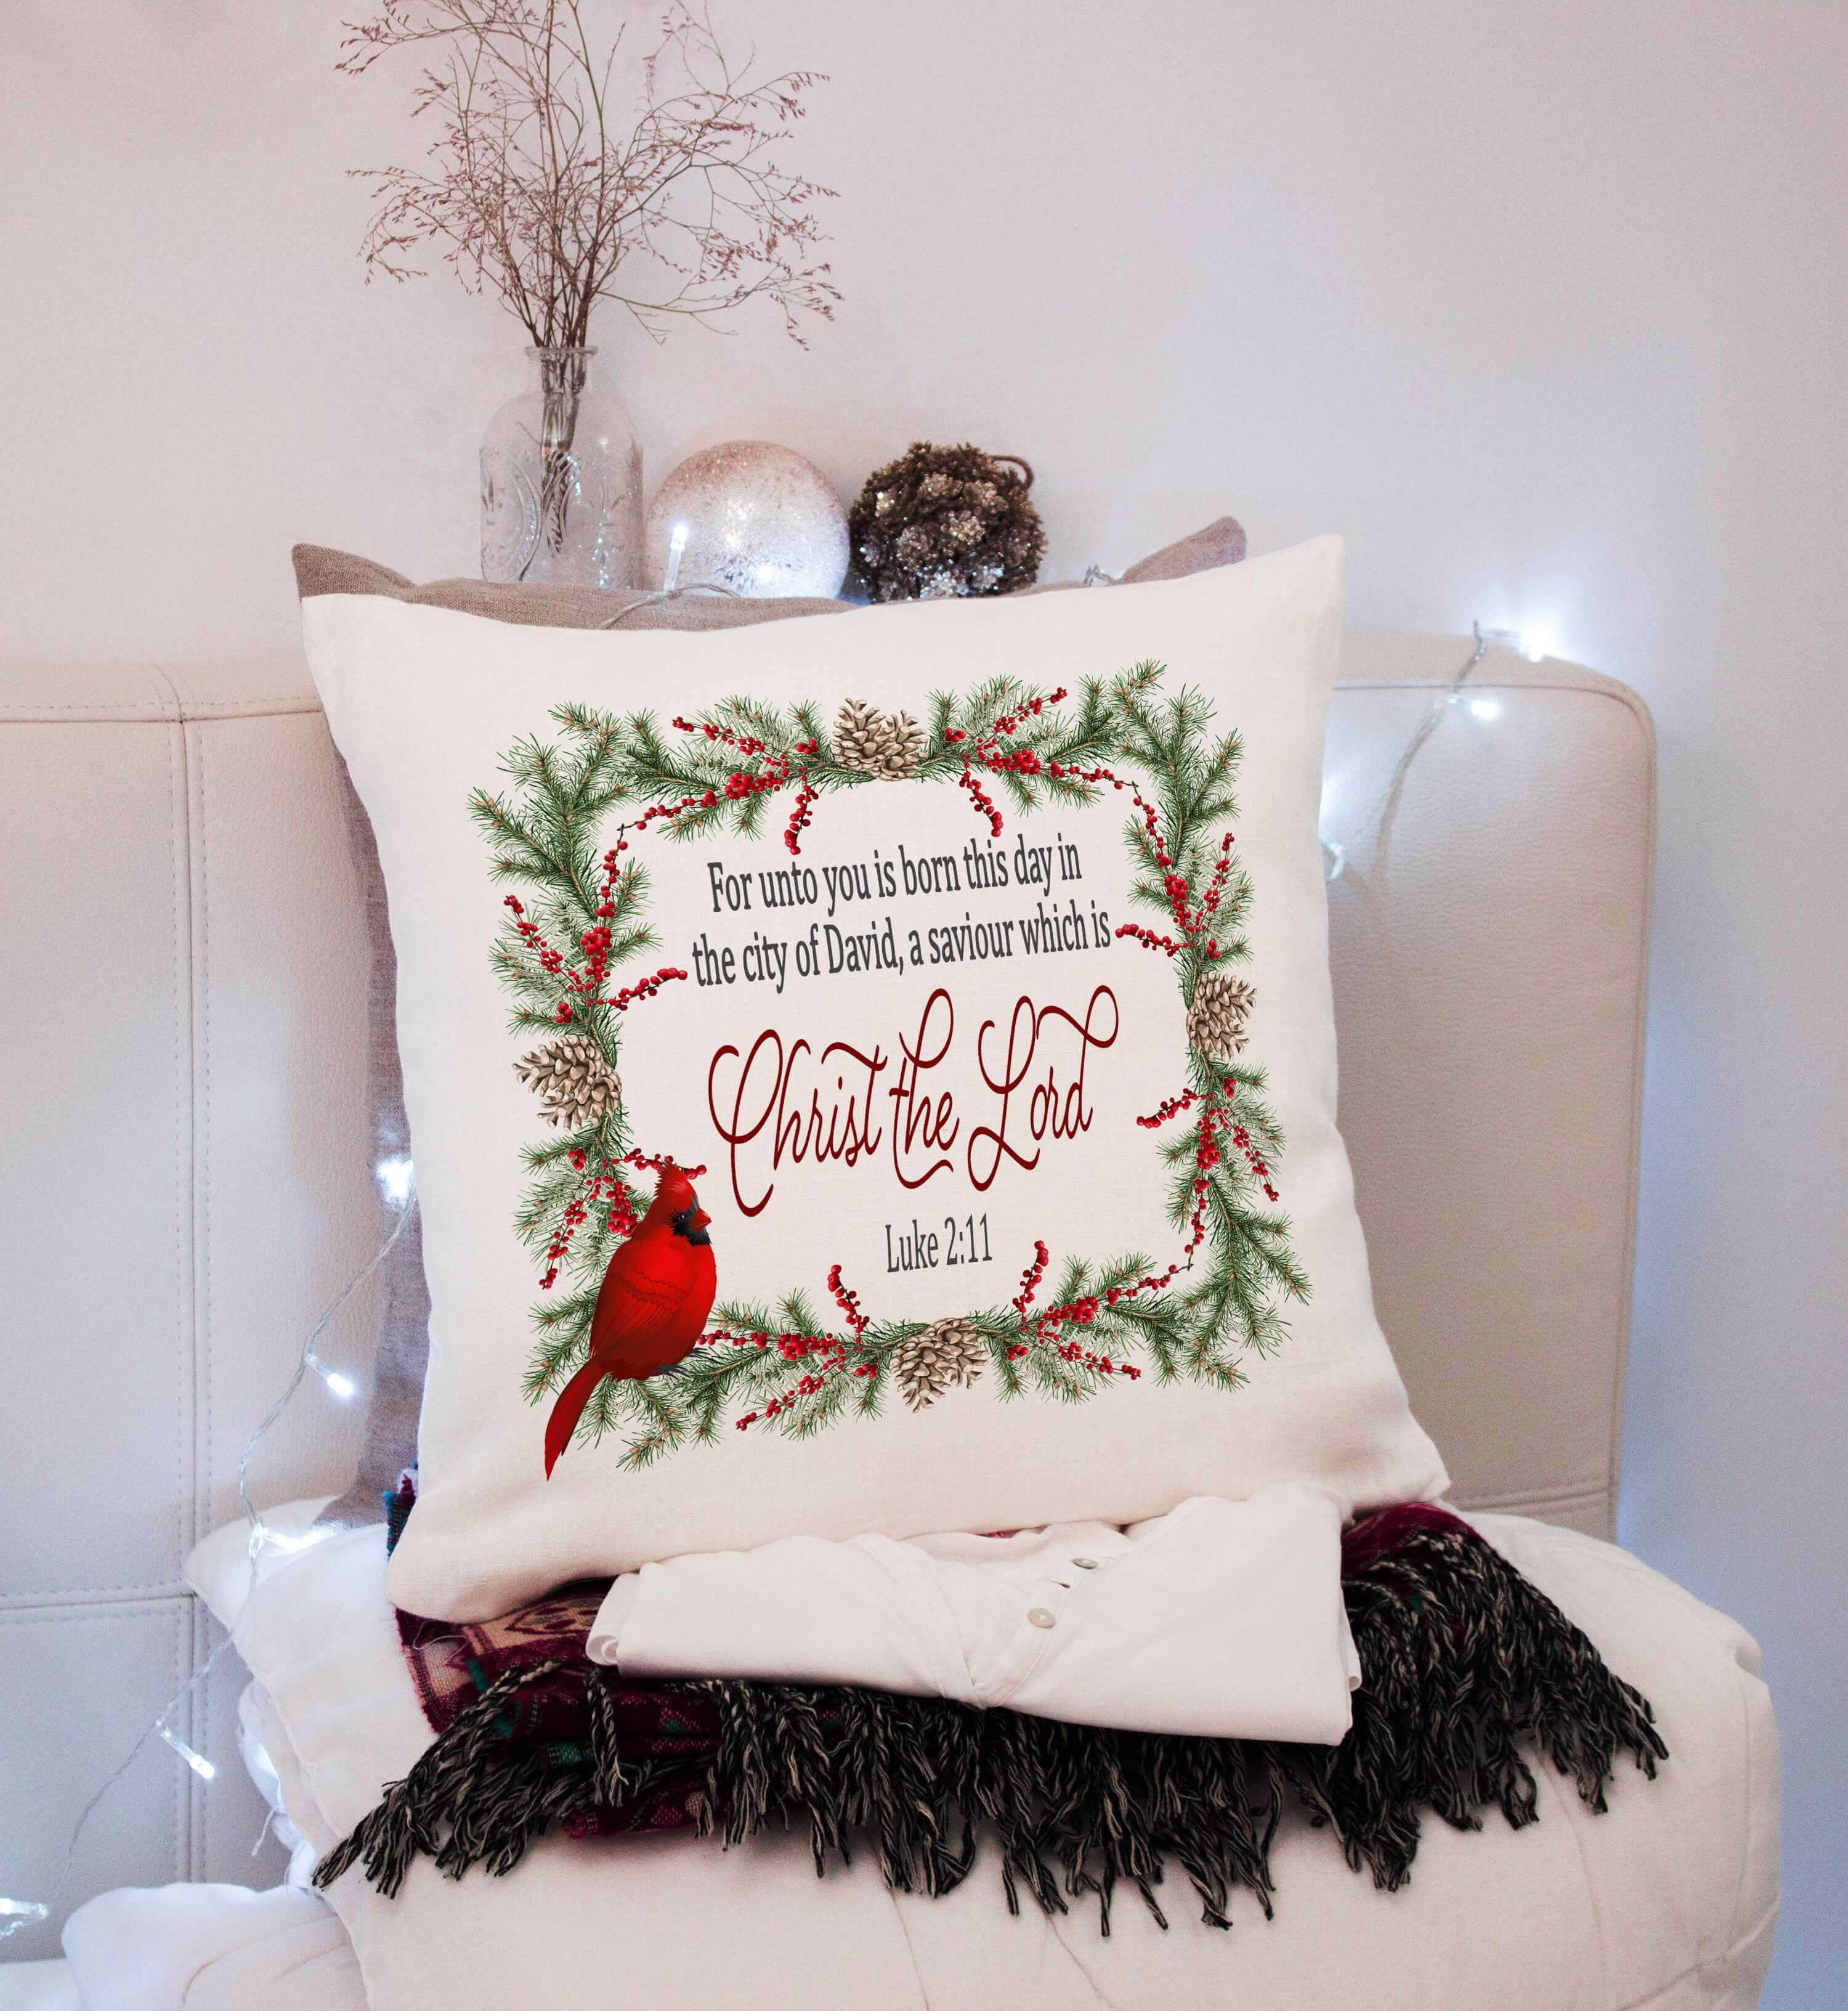 For Unto You Luke 2:11 Pillow